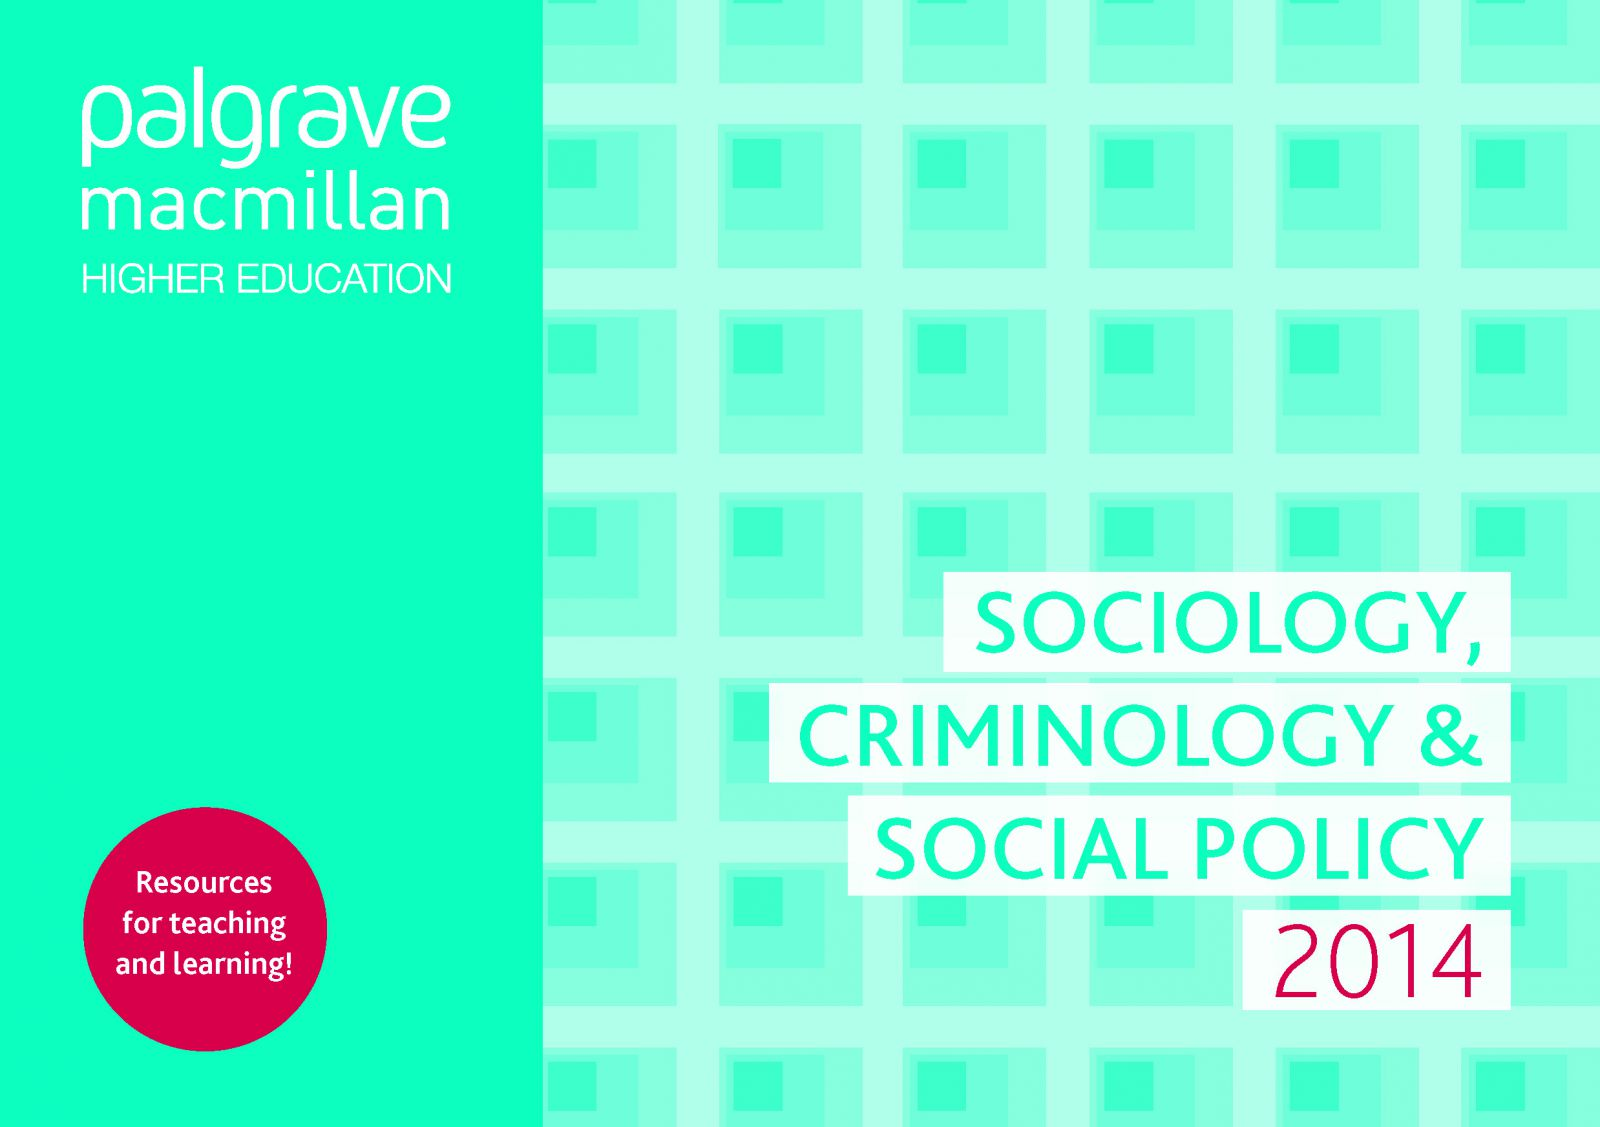 Sociology-Social-Policy-Criminology